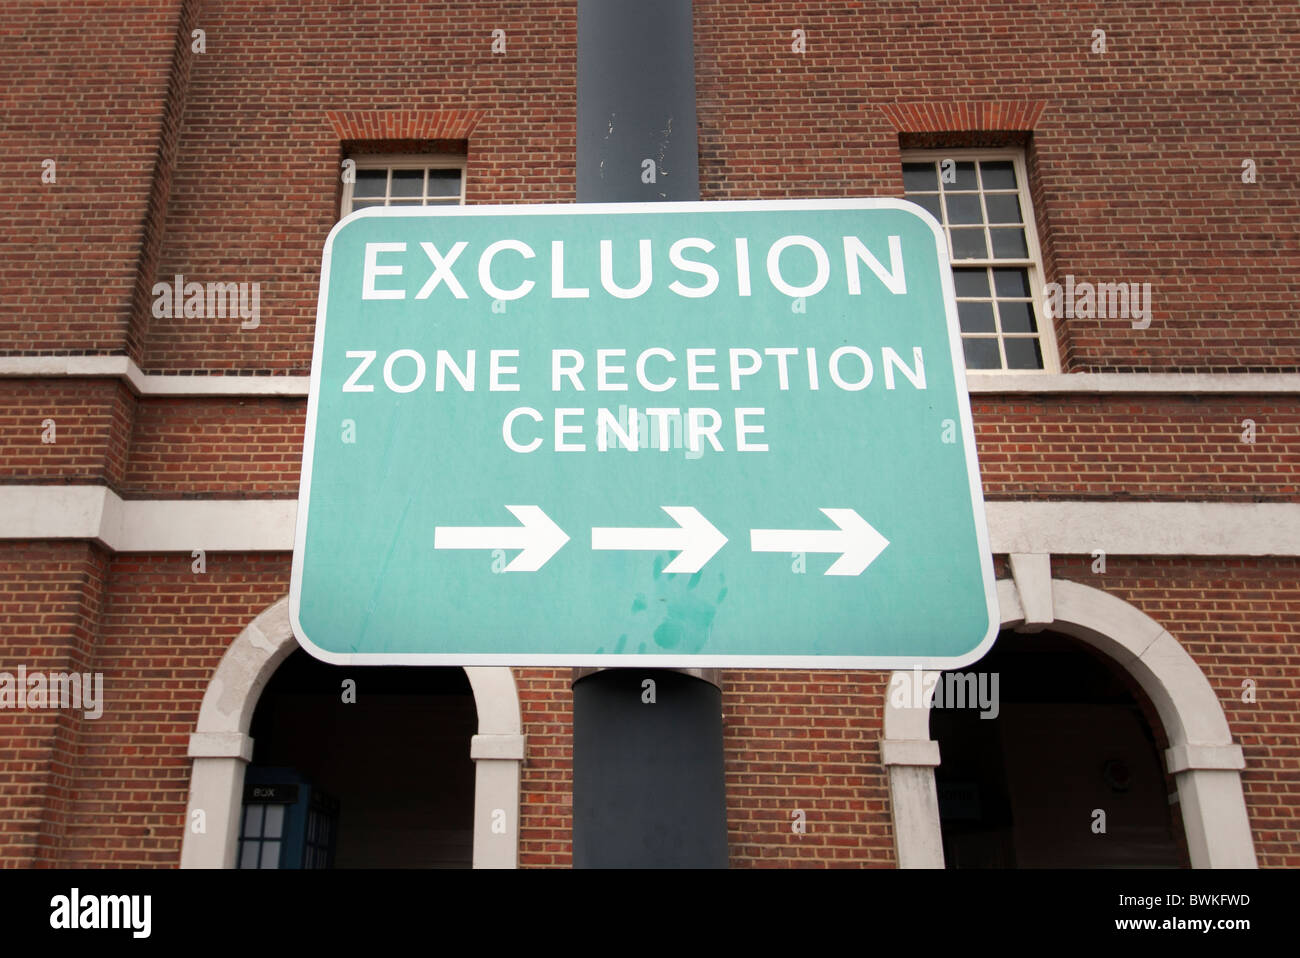 exclusion zone sign - Stock Image